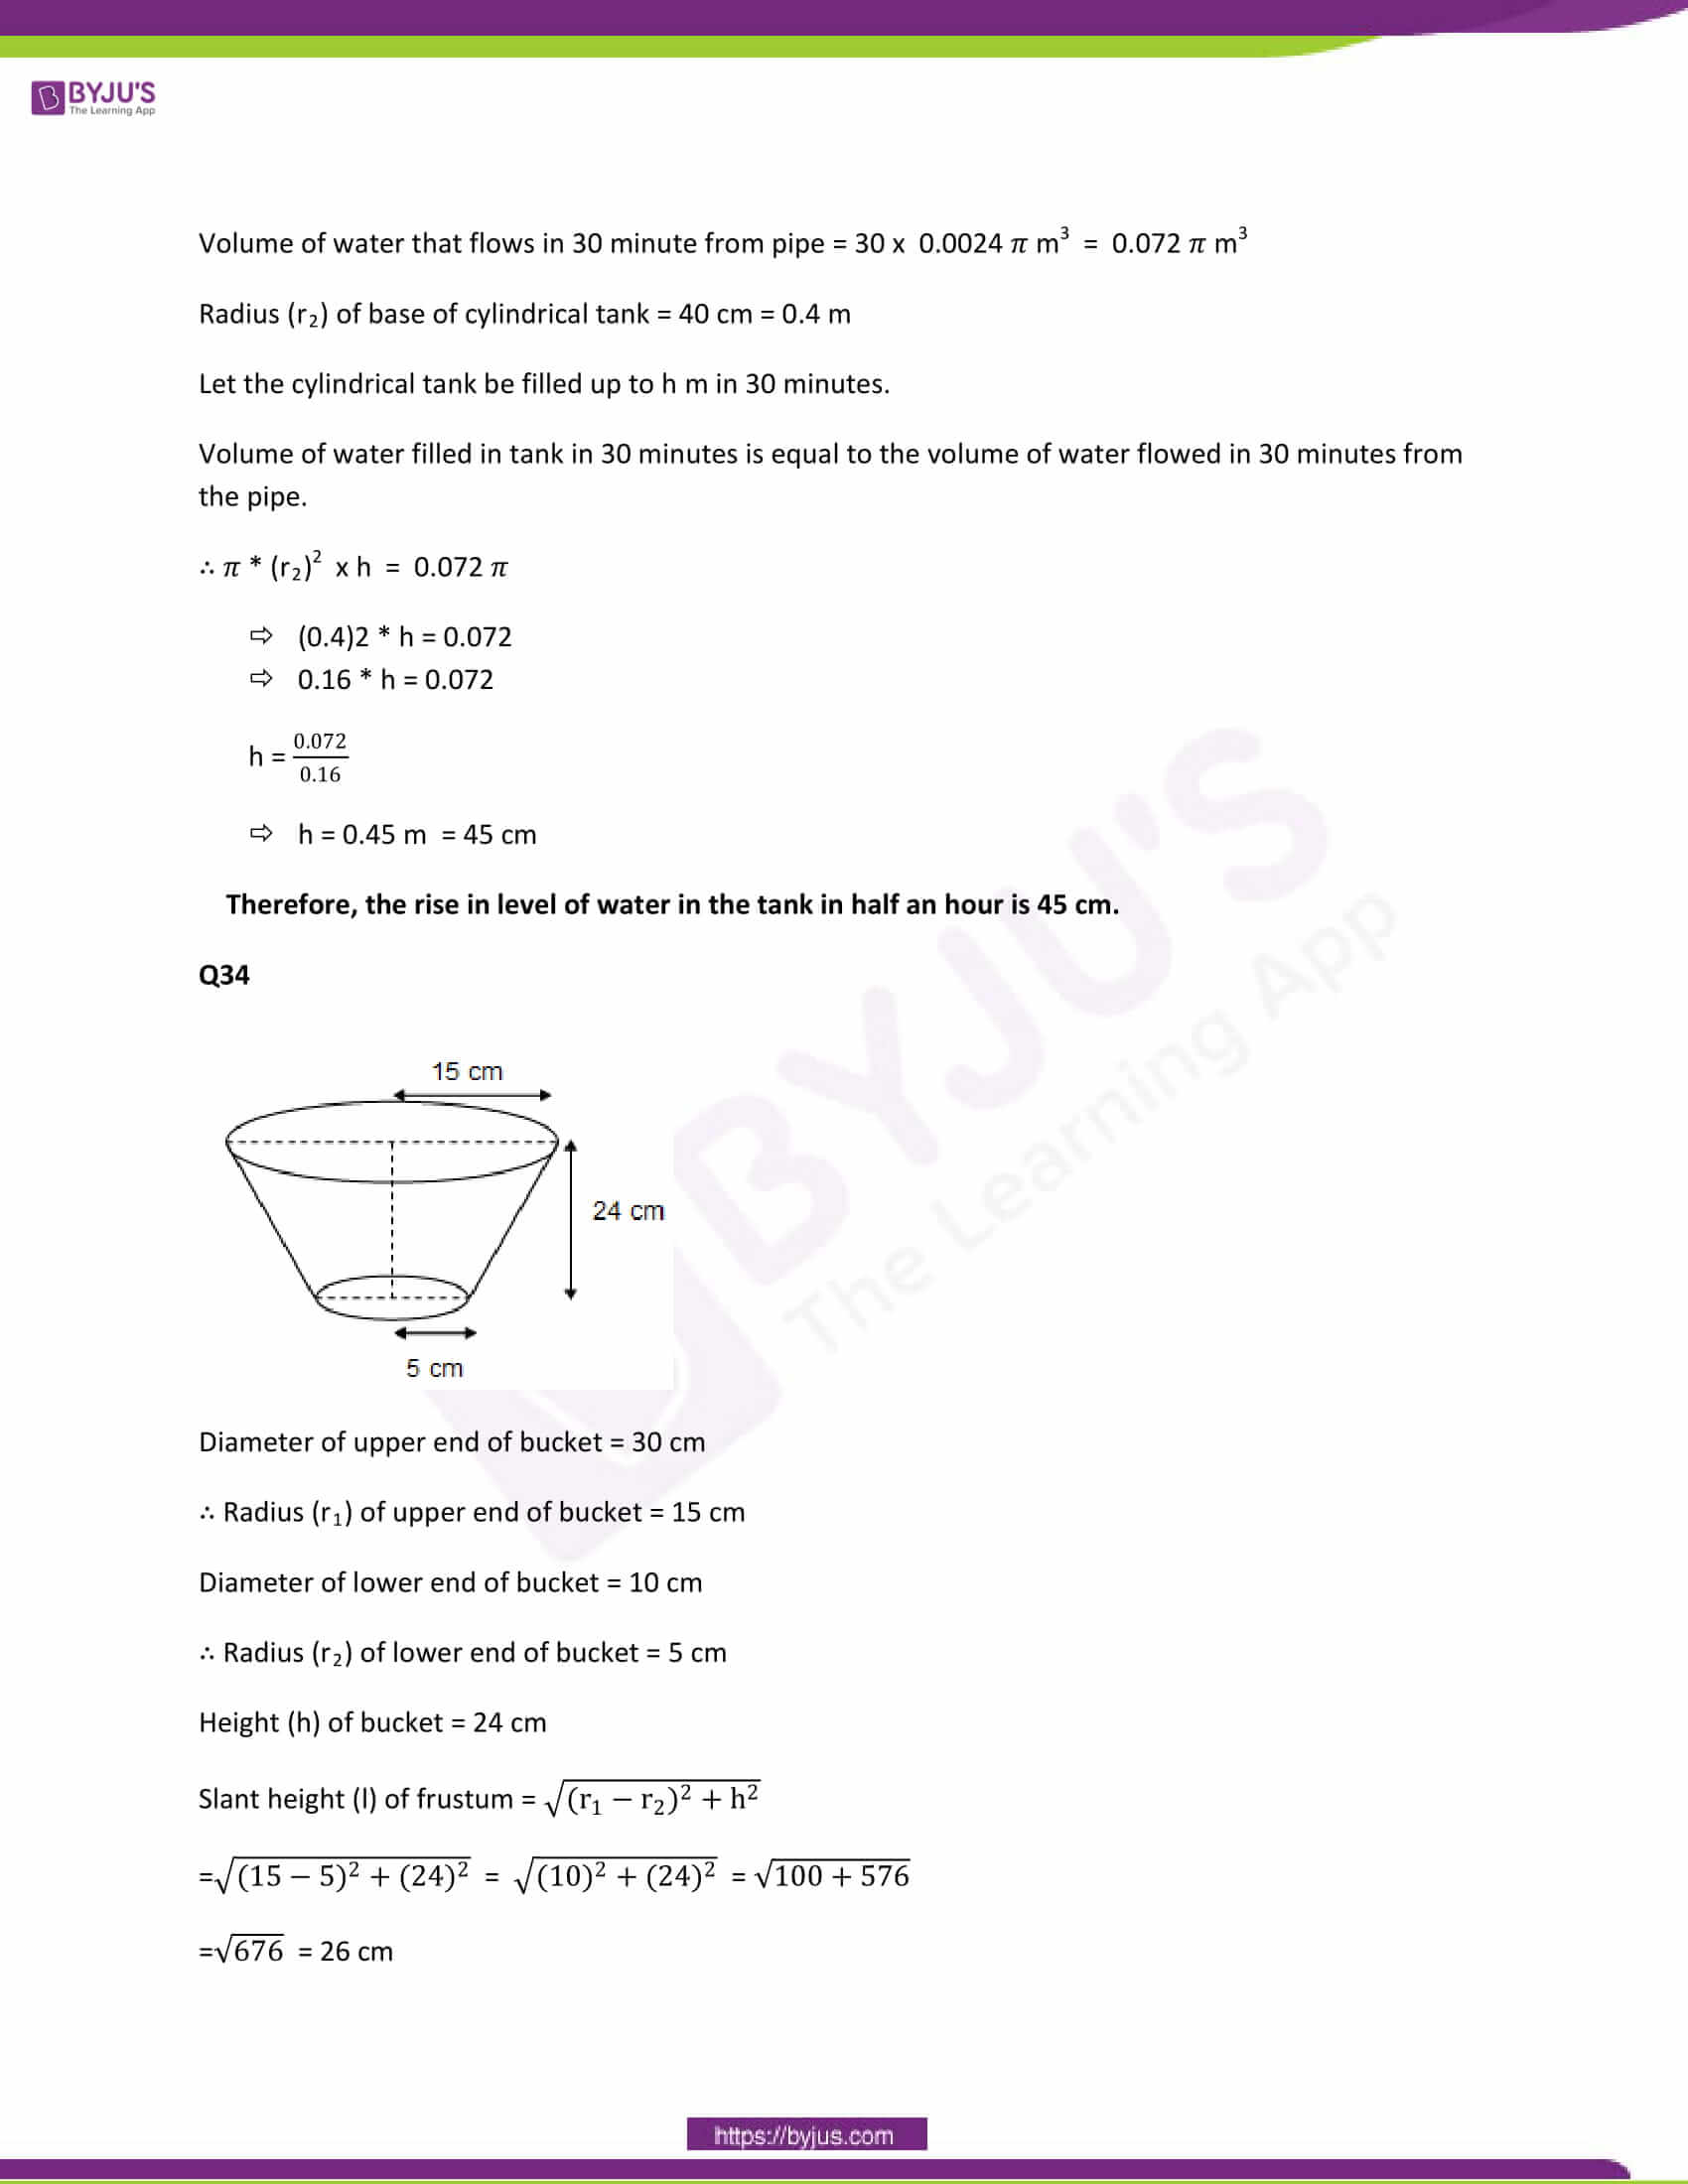 CBSE Class 10 Maths Papers Solution 2013 20